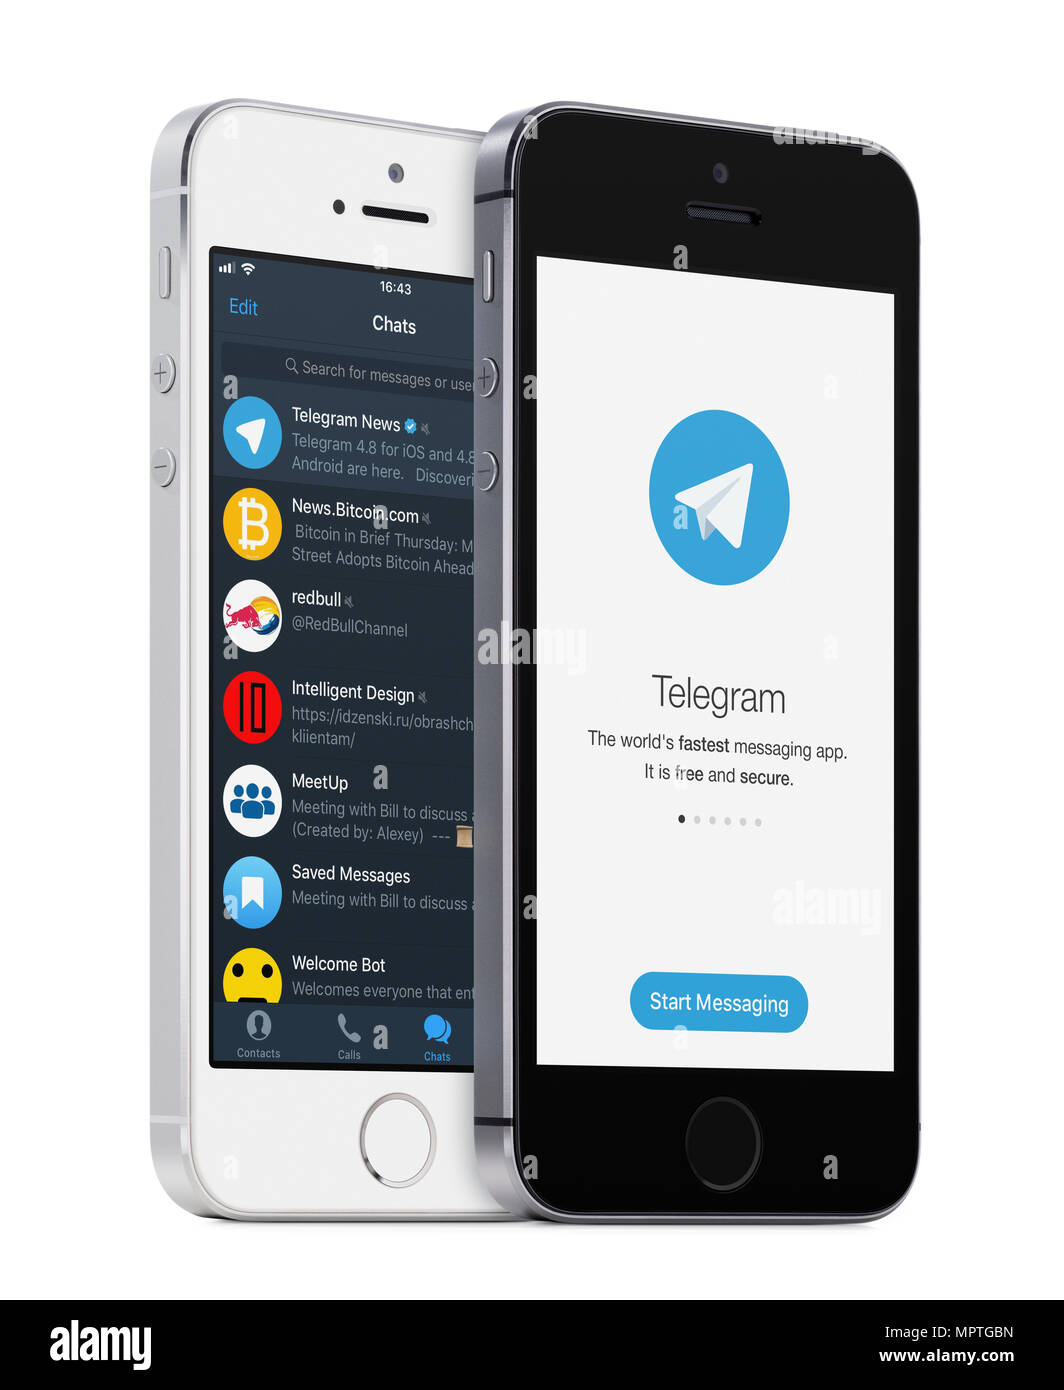 Telegrama messenger app logo y telegrama lista de chat en el blanco y negro de los iphone de Apple. Imagen De Stock